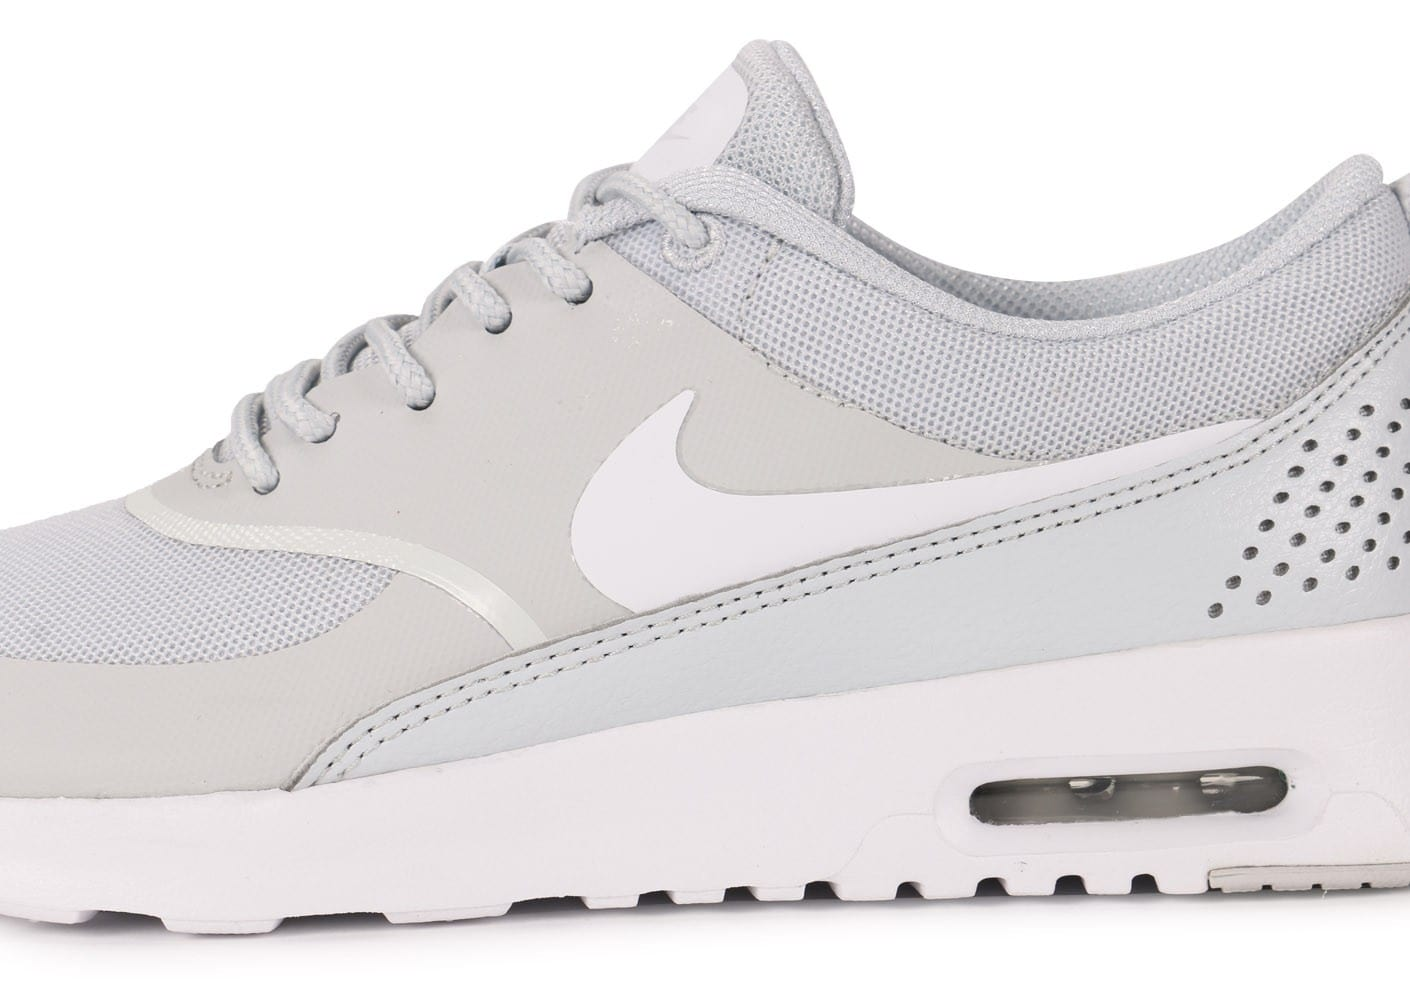 Nike Air Max Thea grise - Chaussures Chaussures - Chausport